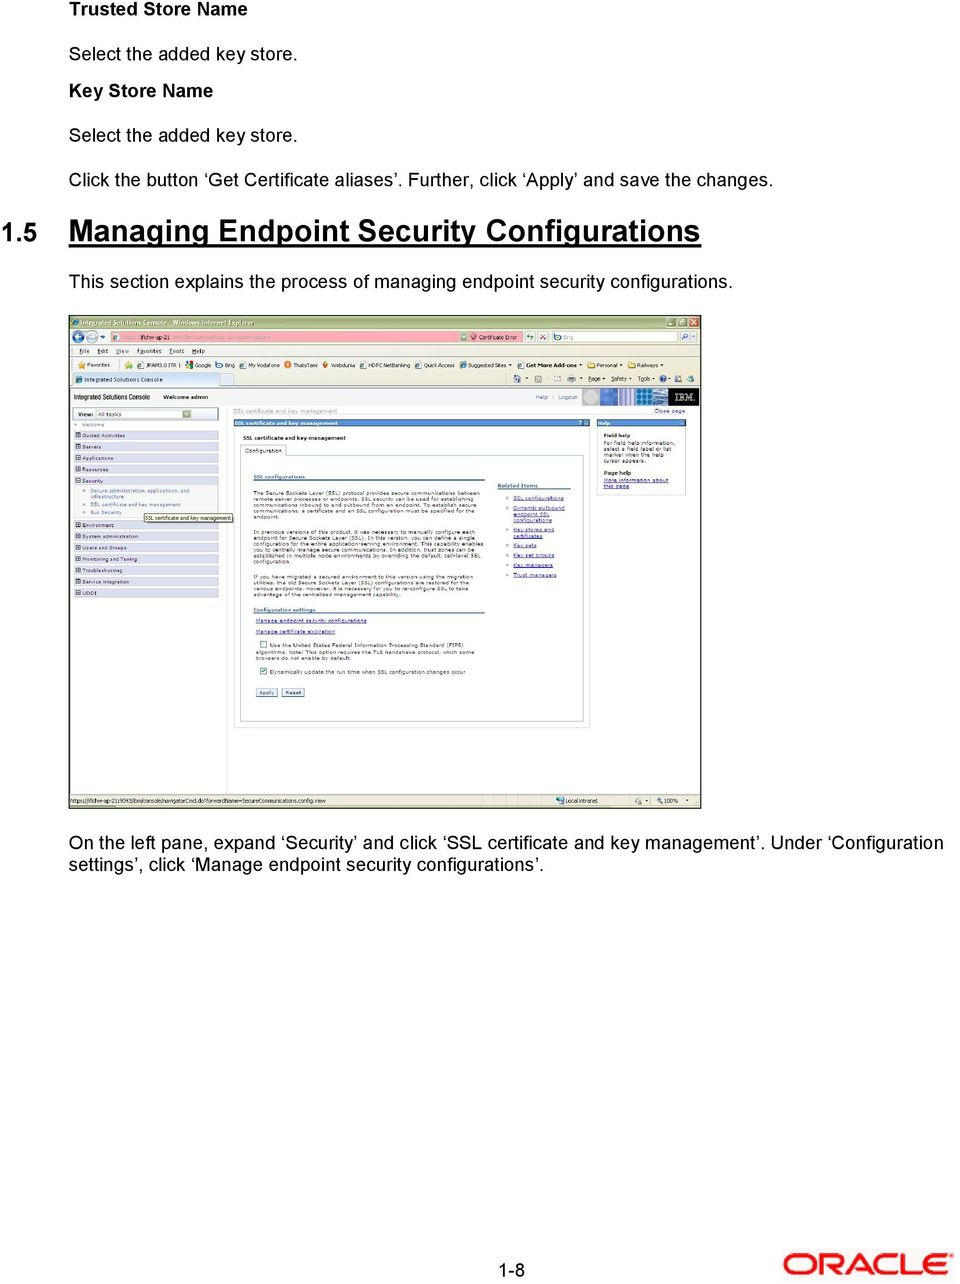 5 Managing Endpoint Security Configurations This section explains the process of managing endpoint security